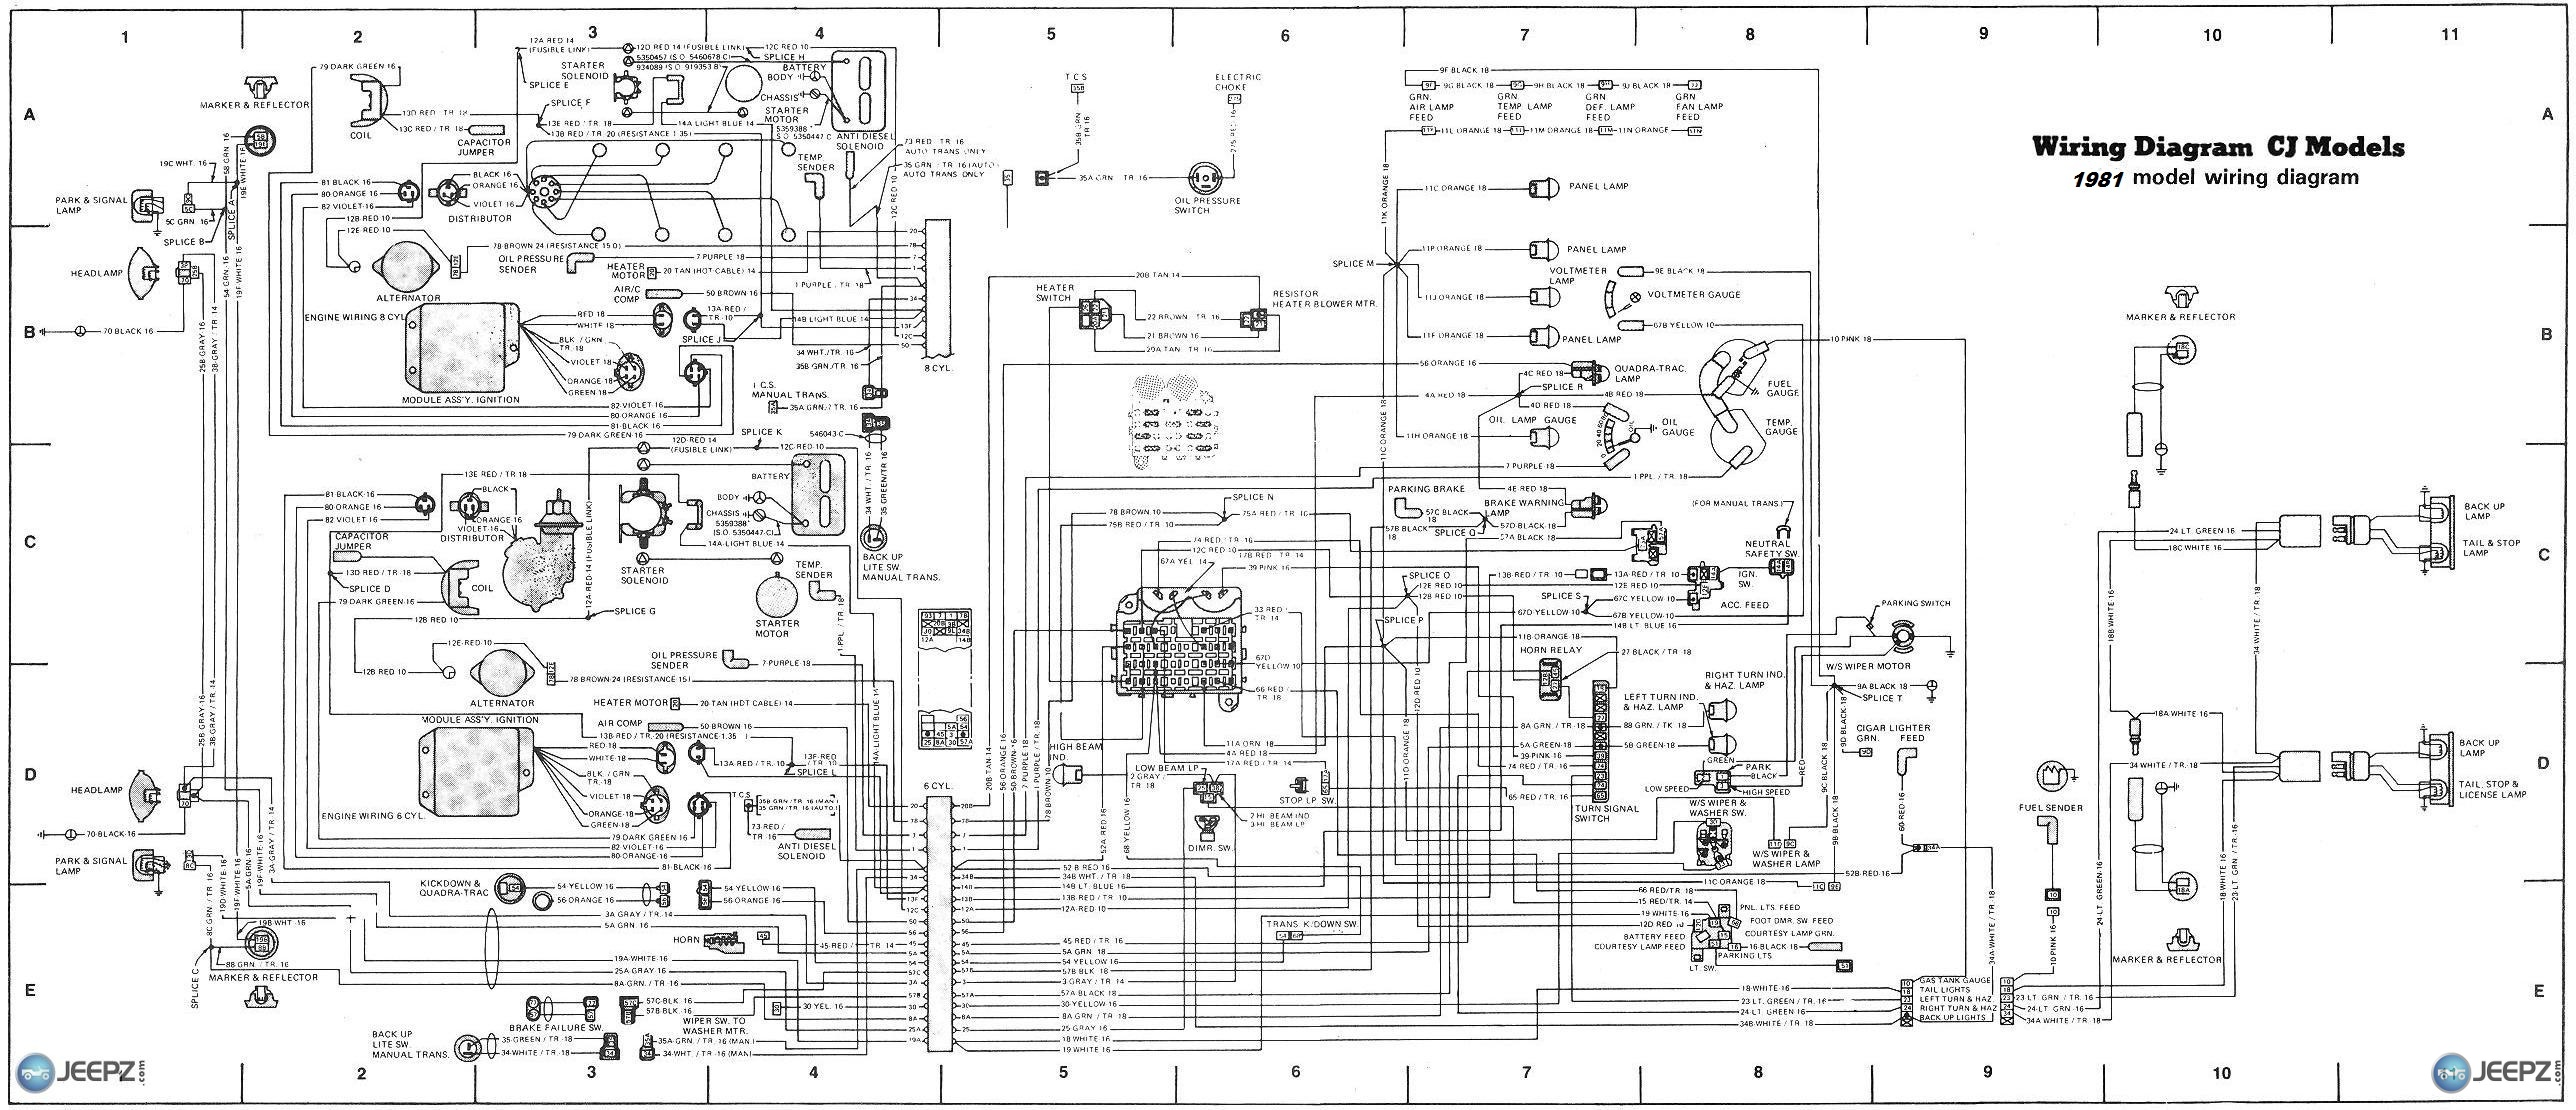 7993d1301845049 cj 7 wire diagram cj wiring diagram 1981 1978 jeep cj7 wiring diagram electrical wiring for 78 jeep cj5 81 cj5 wiring harness at honlapkeszites.co